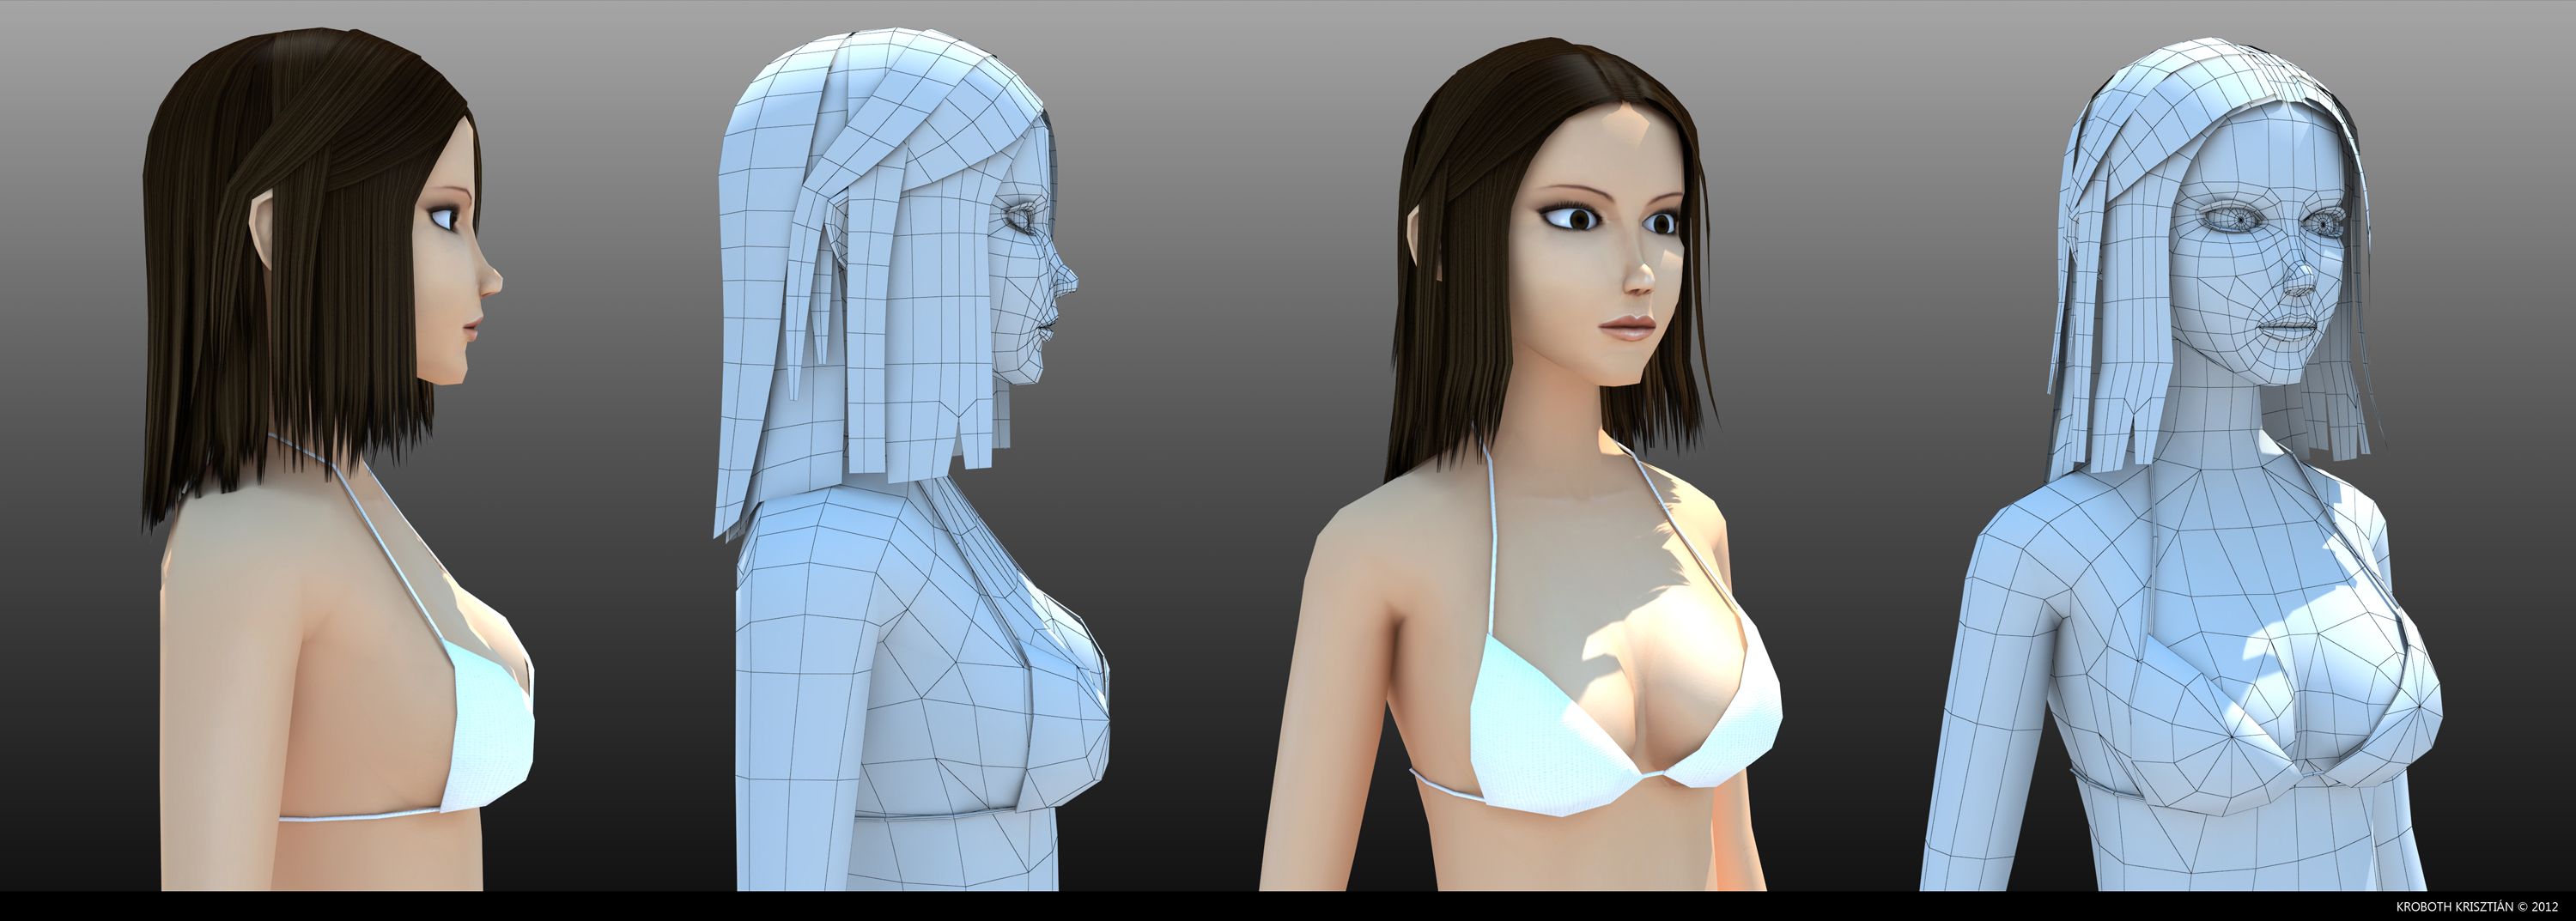 Low poly woman 2 by 4T0mCsib3